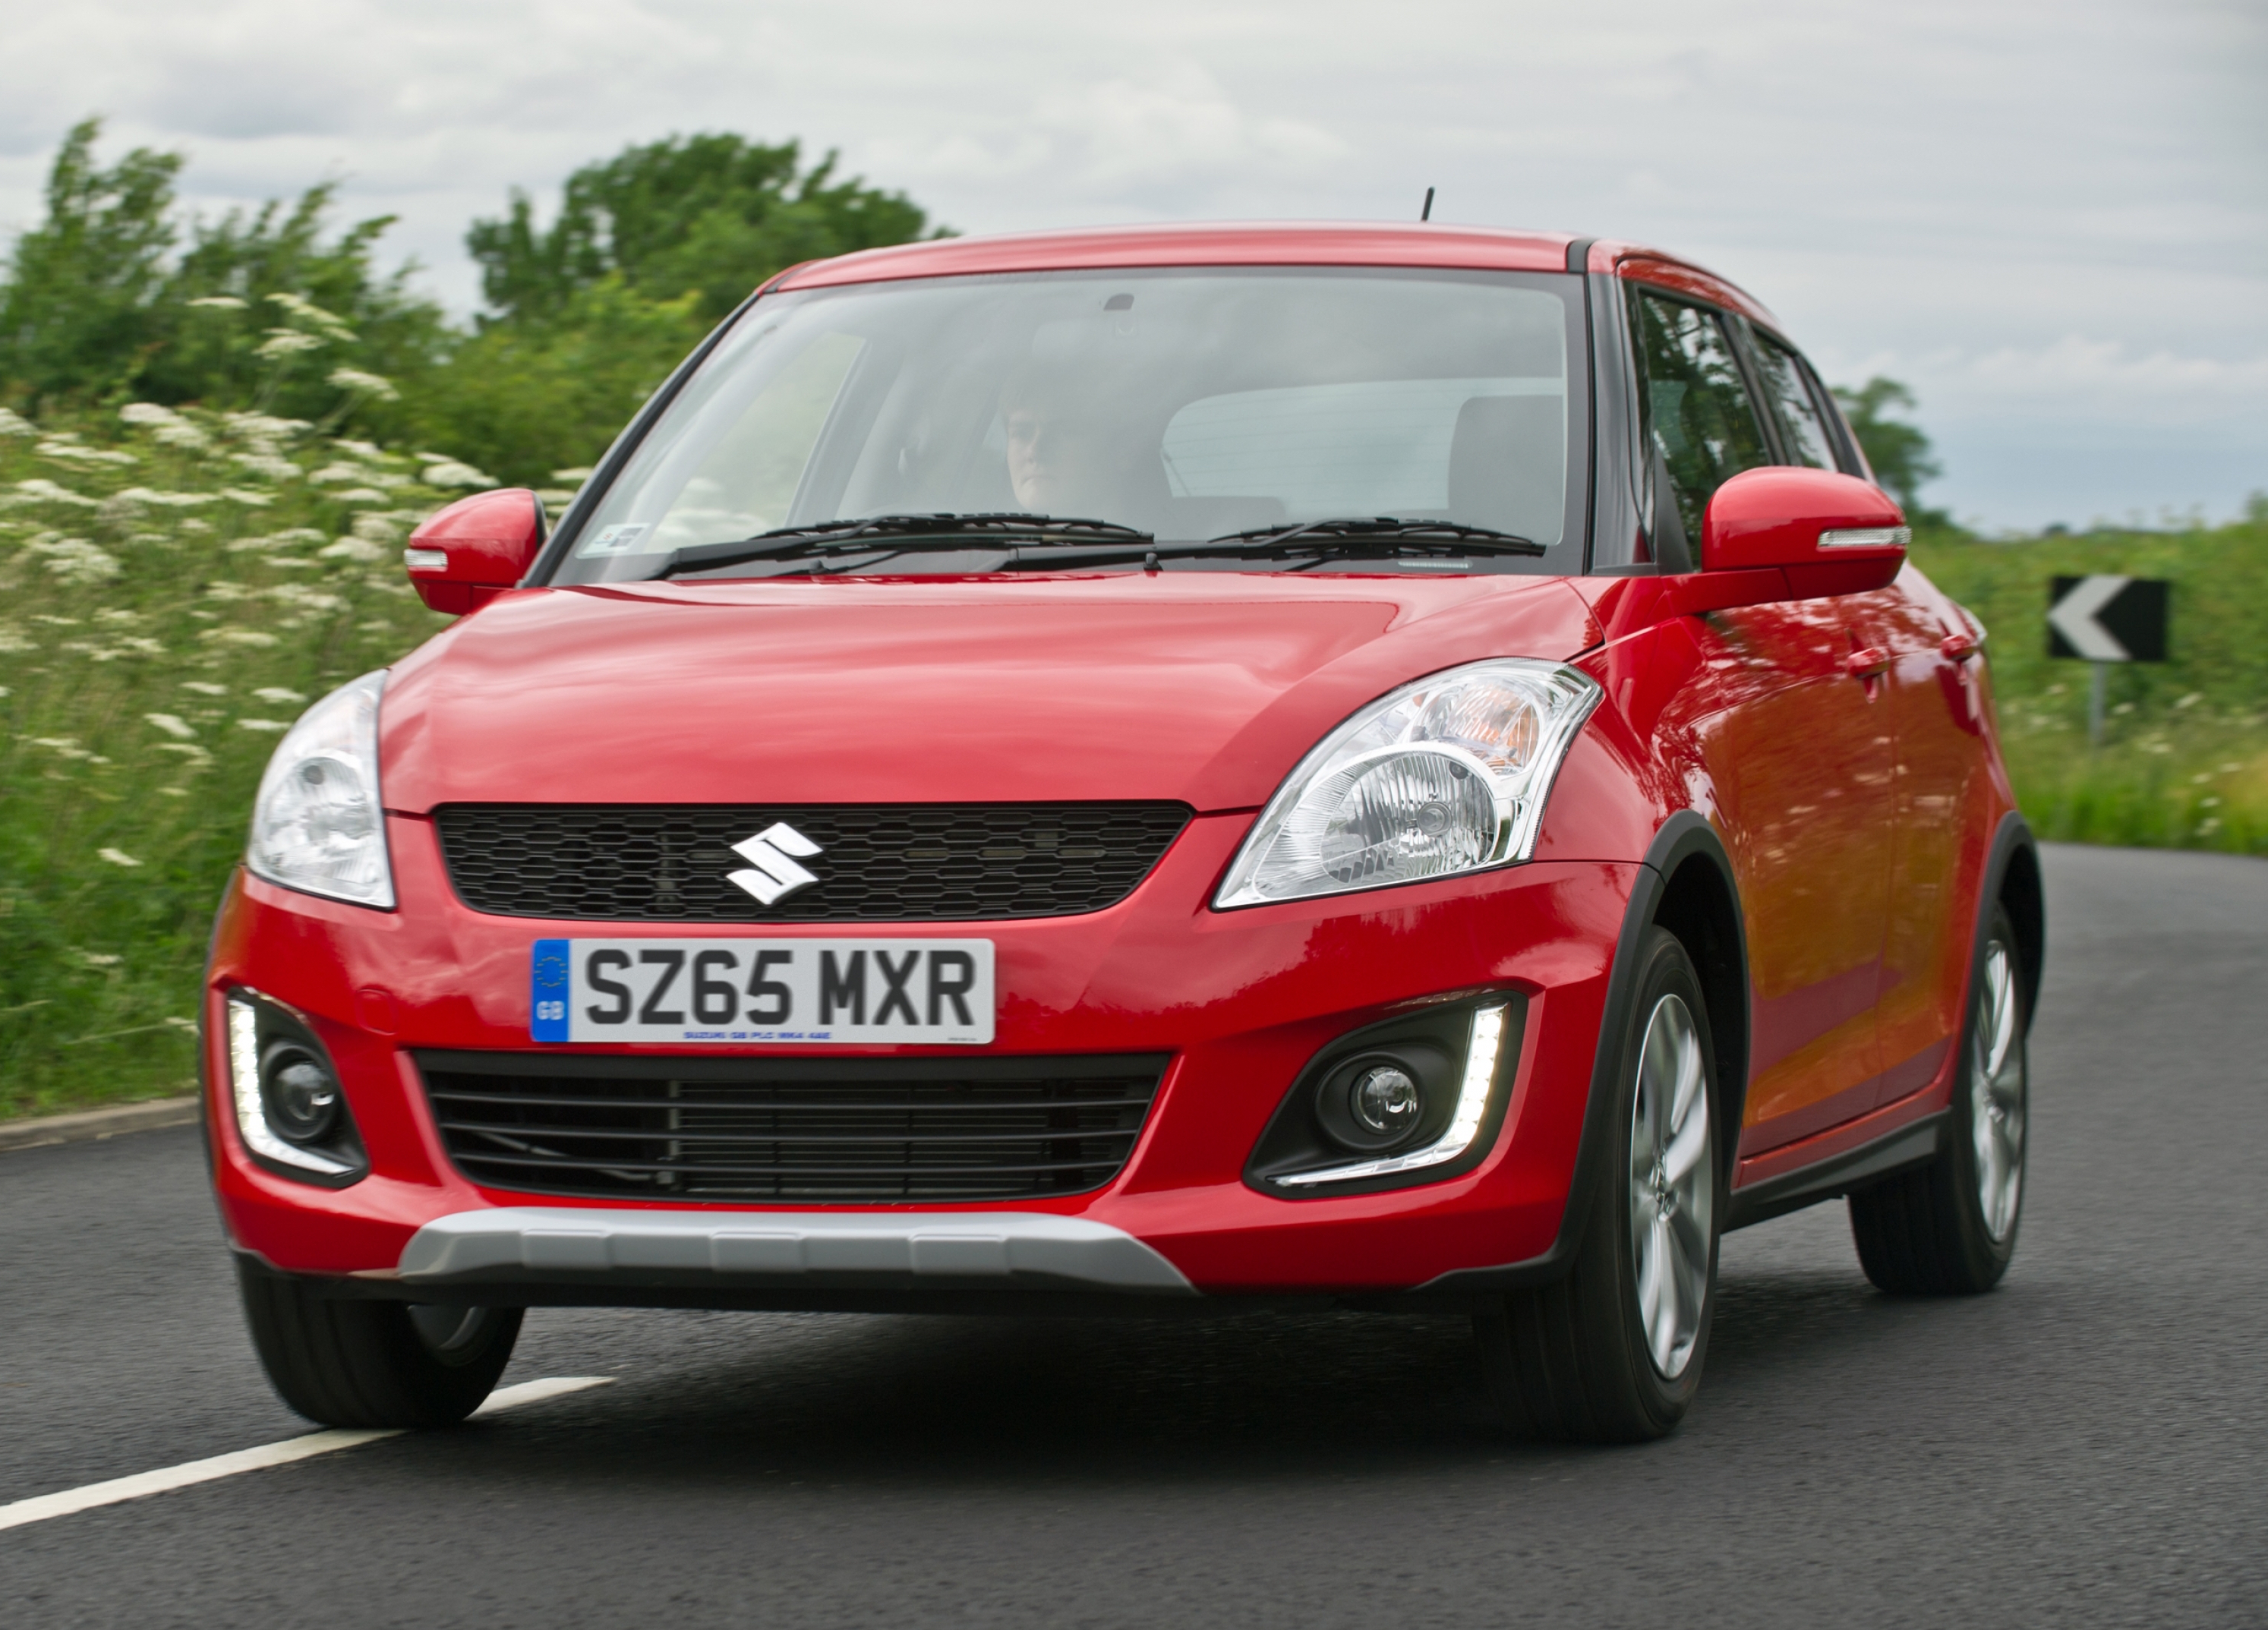 2016 suzuki swift 4x4 review car reviews driver 39 s seat. Black Bedroom Furniture Sets. Home Design Ideas